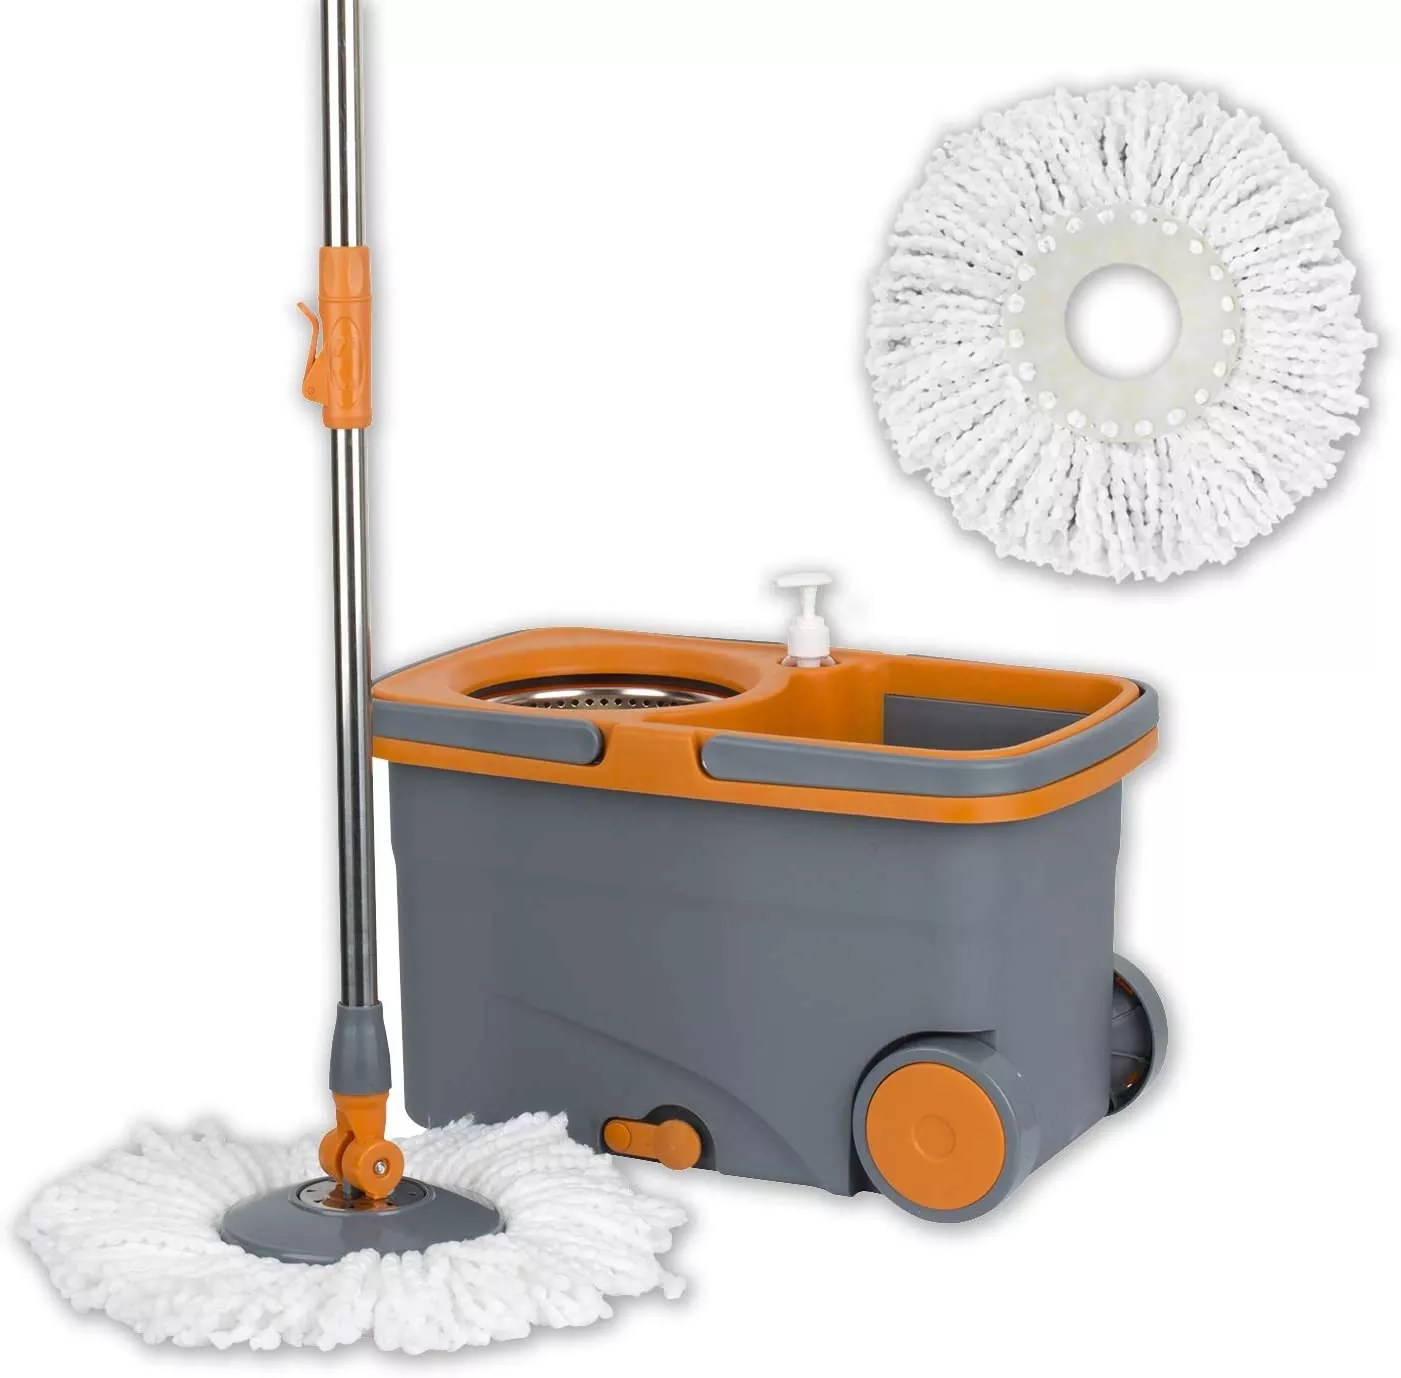 Casabella Graphite/Orange Spin Cycle Mop with Bucket